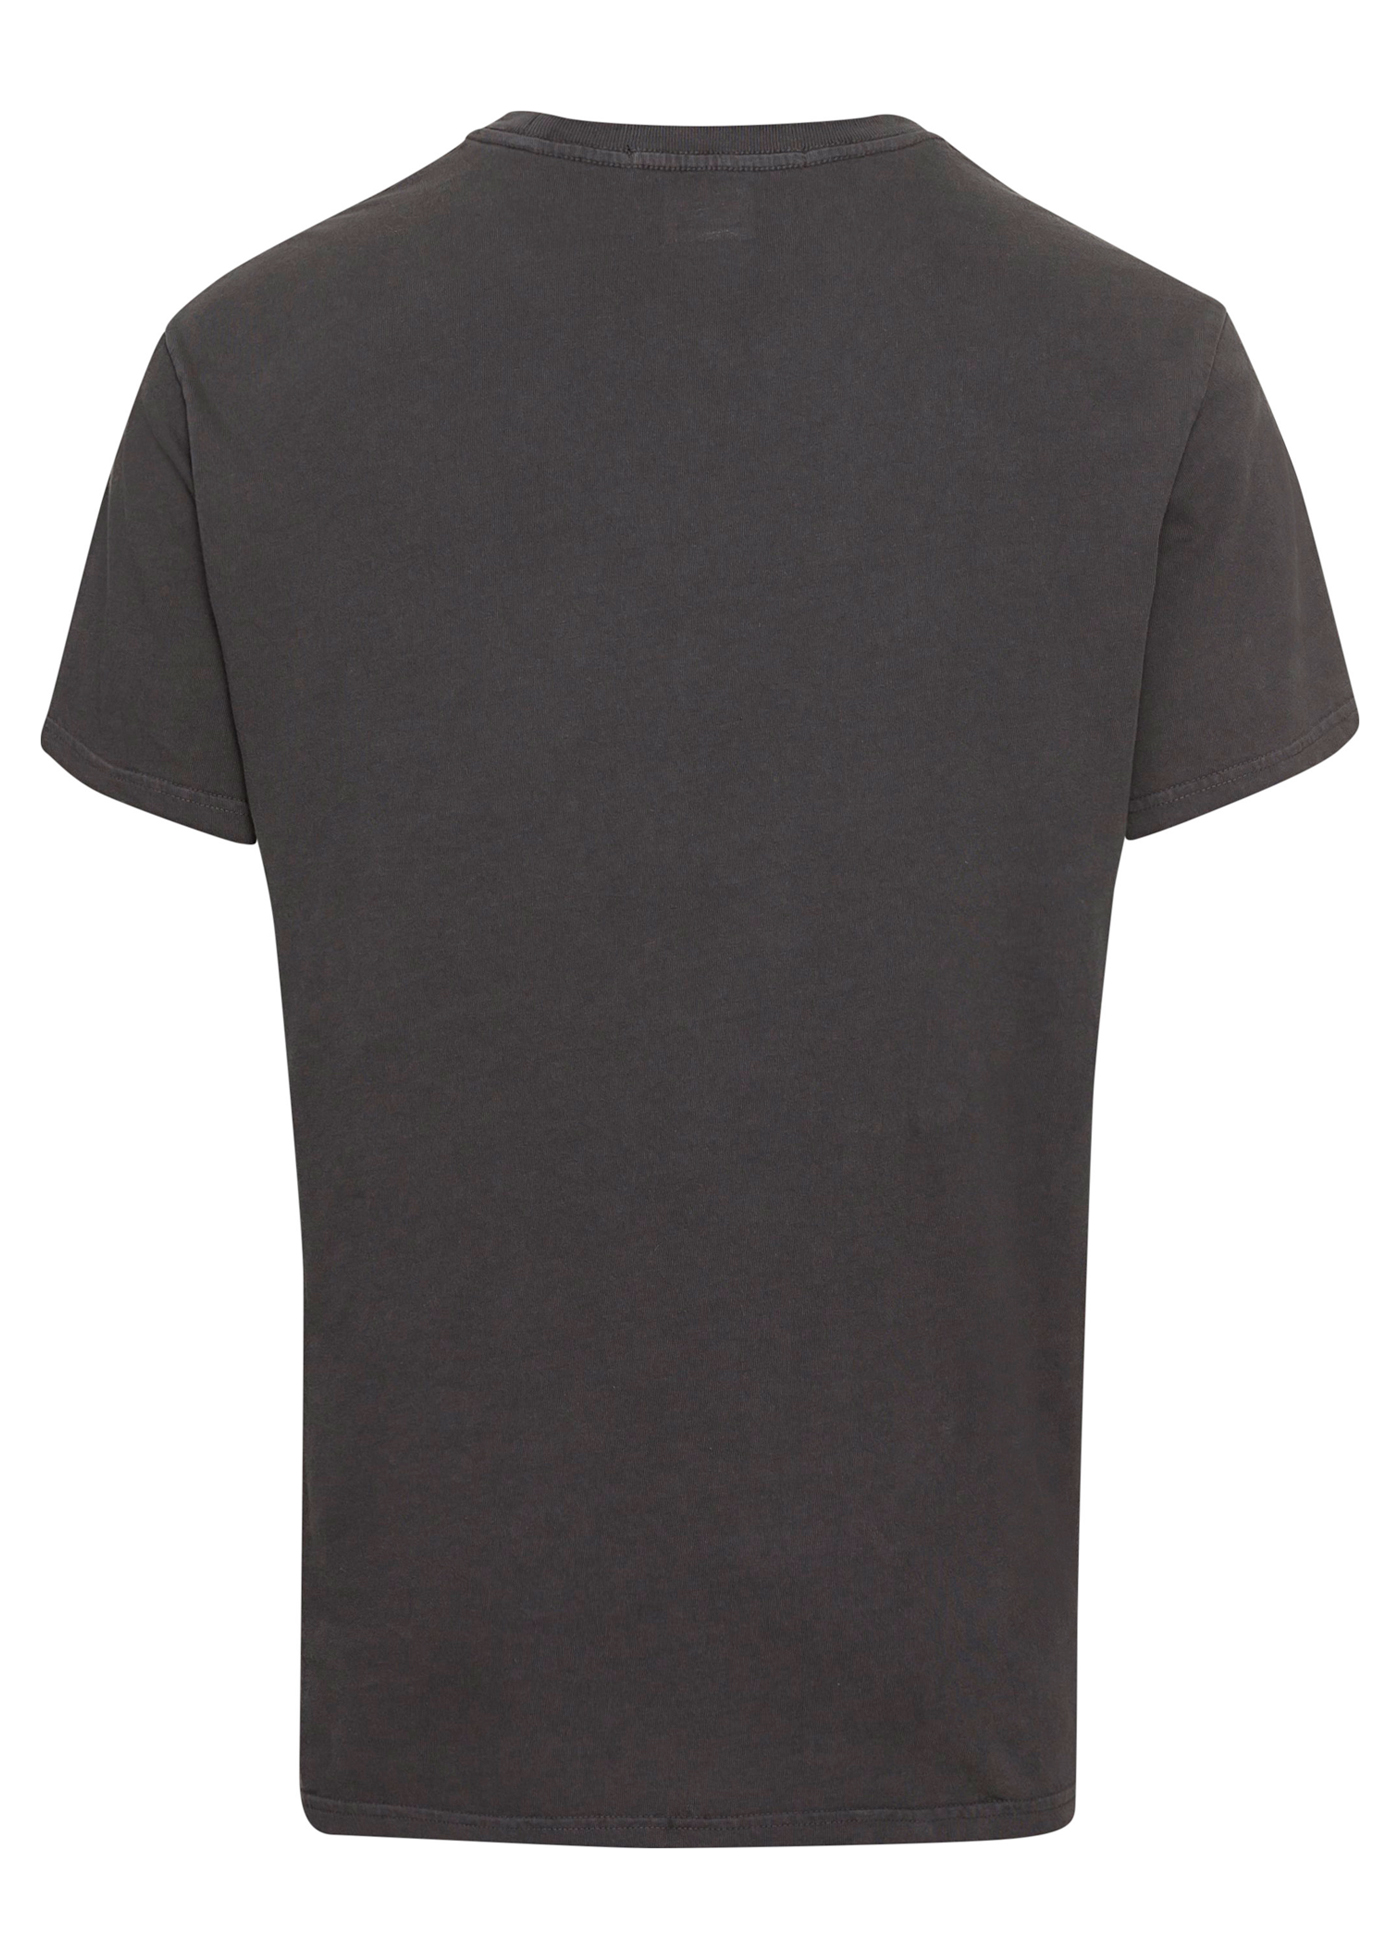 university kash ss tee charcoal image number 1